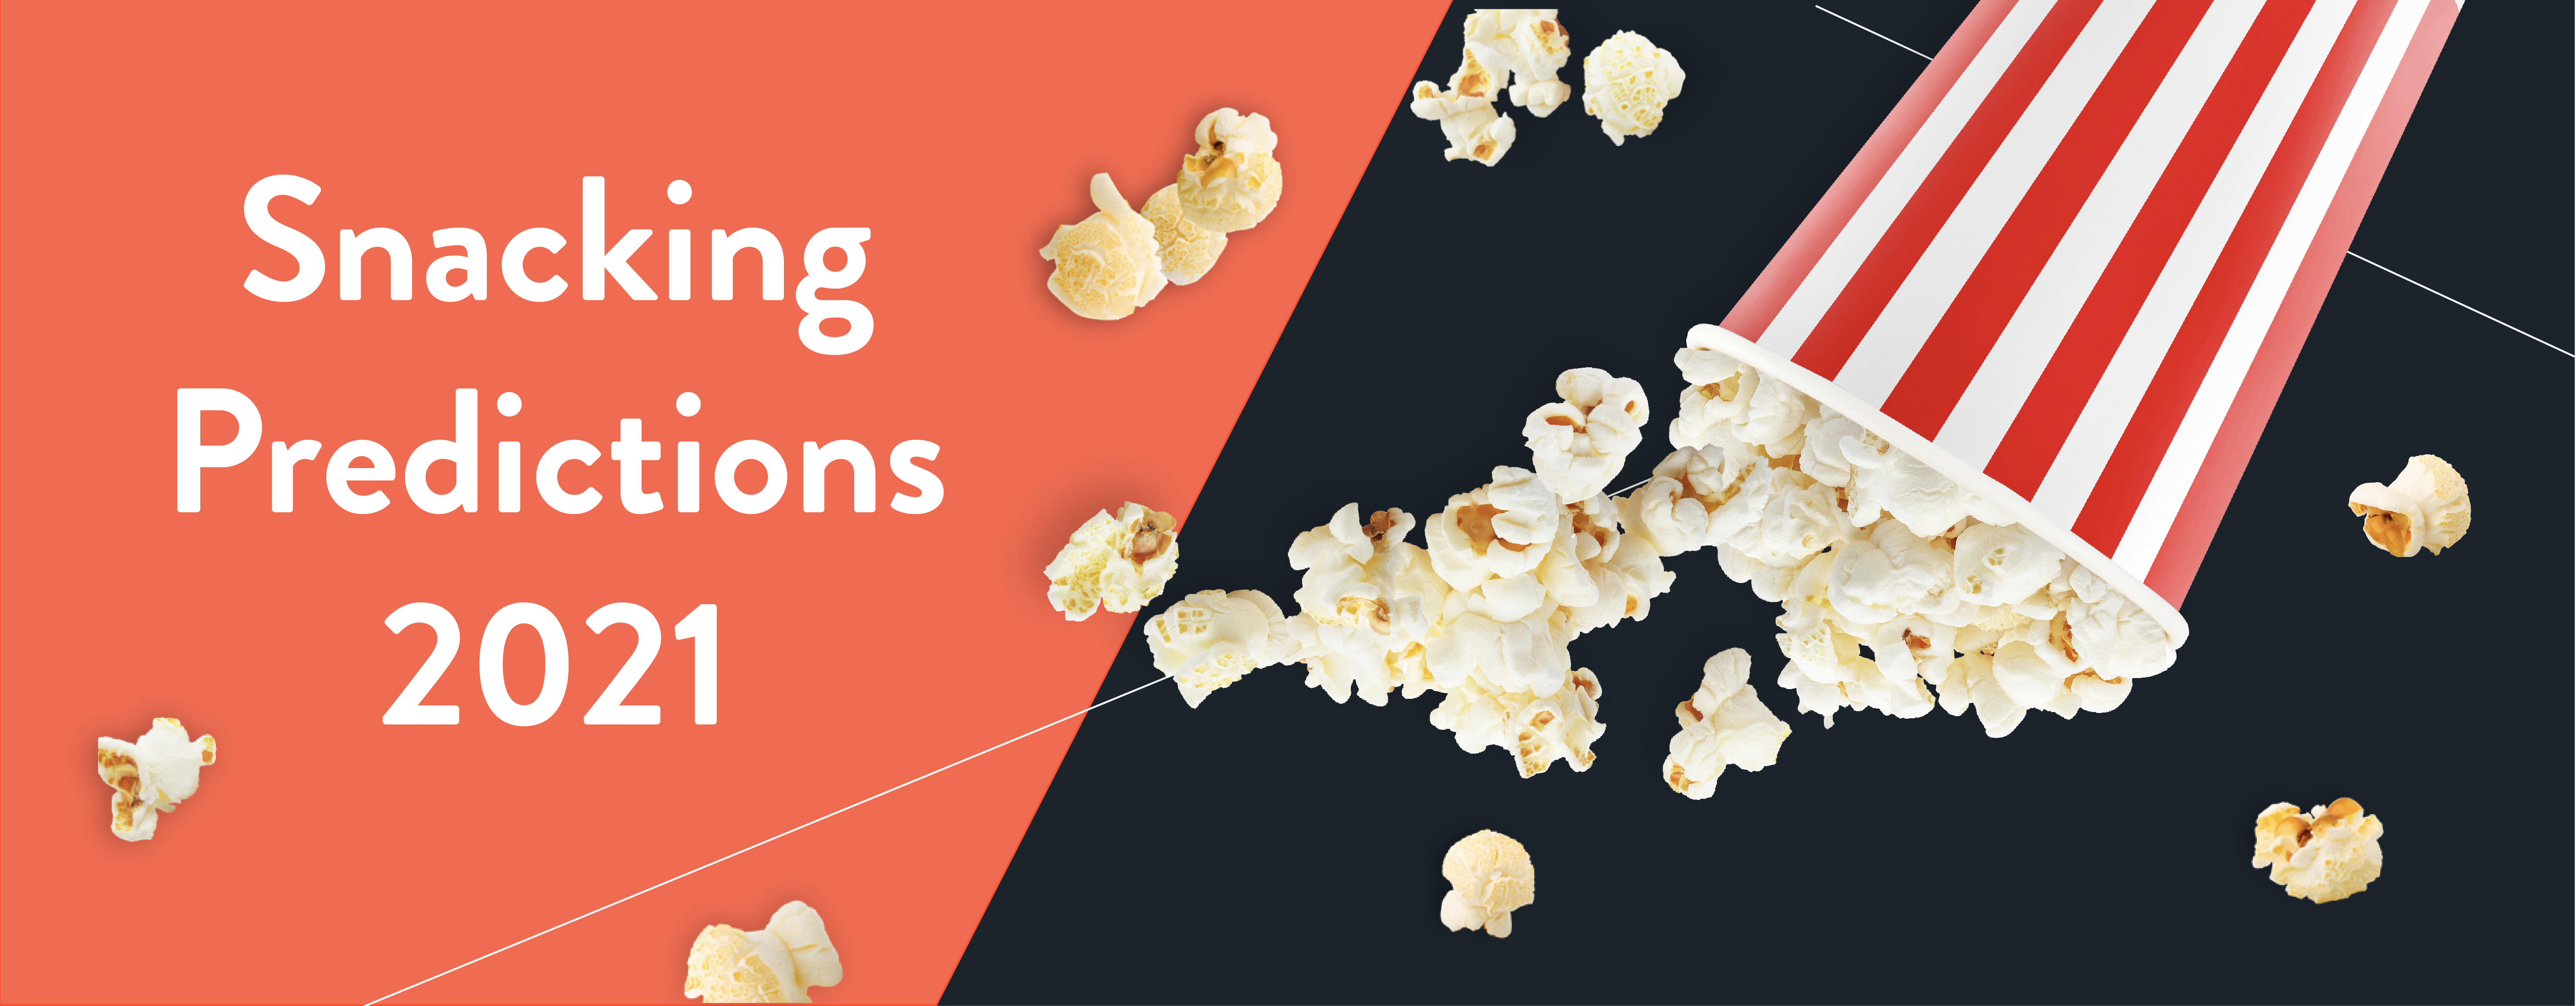 SNACKING_landing page banner